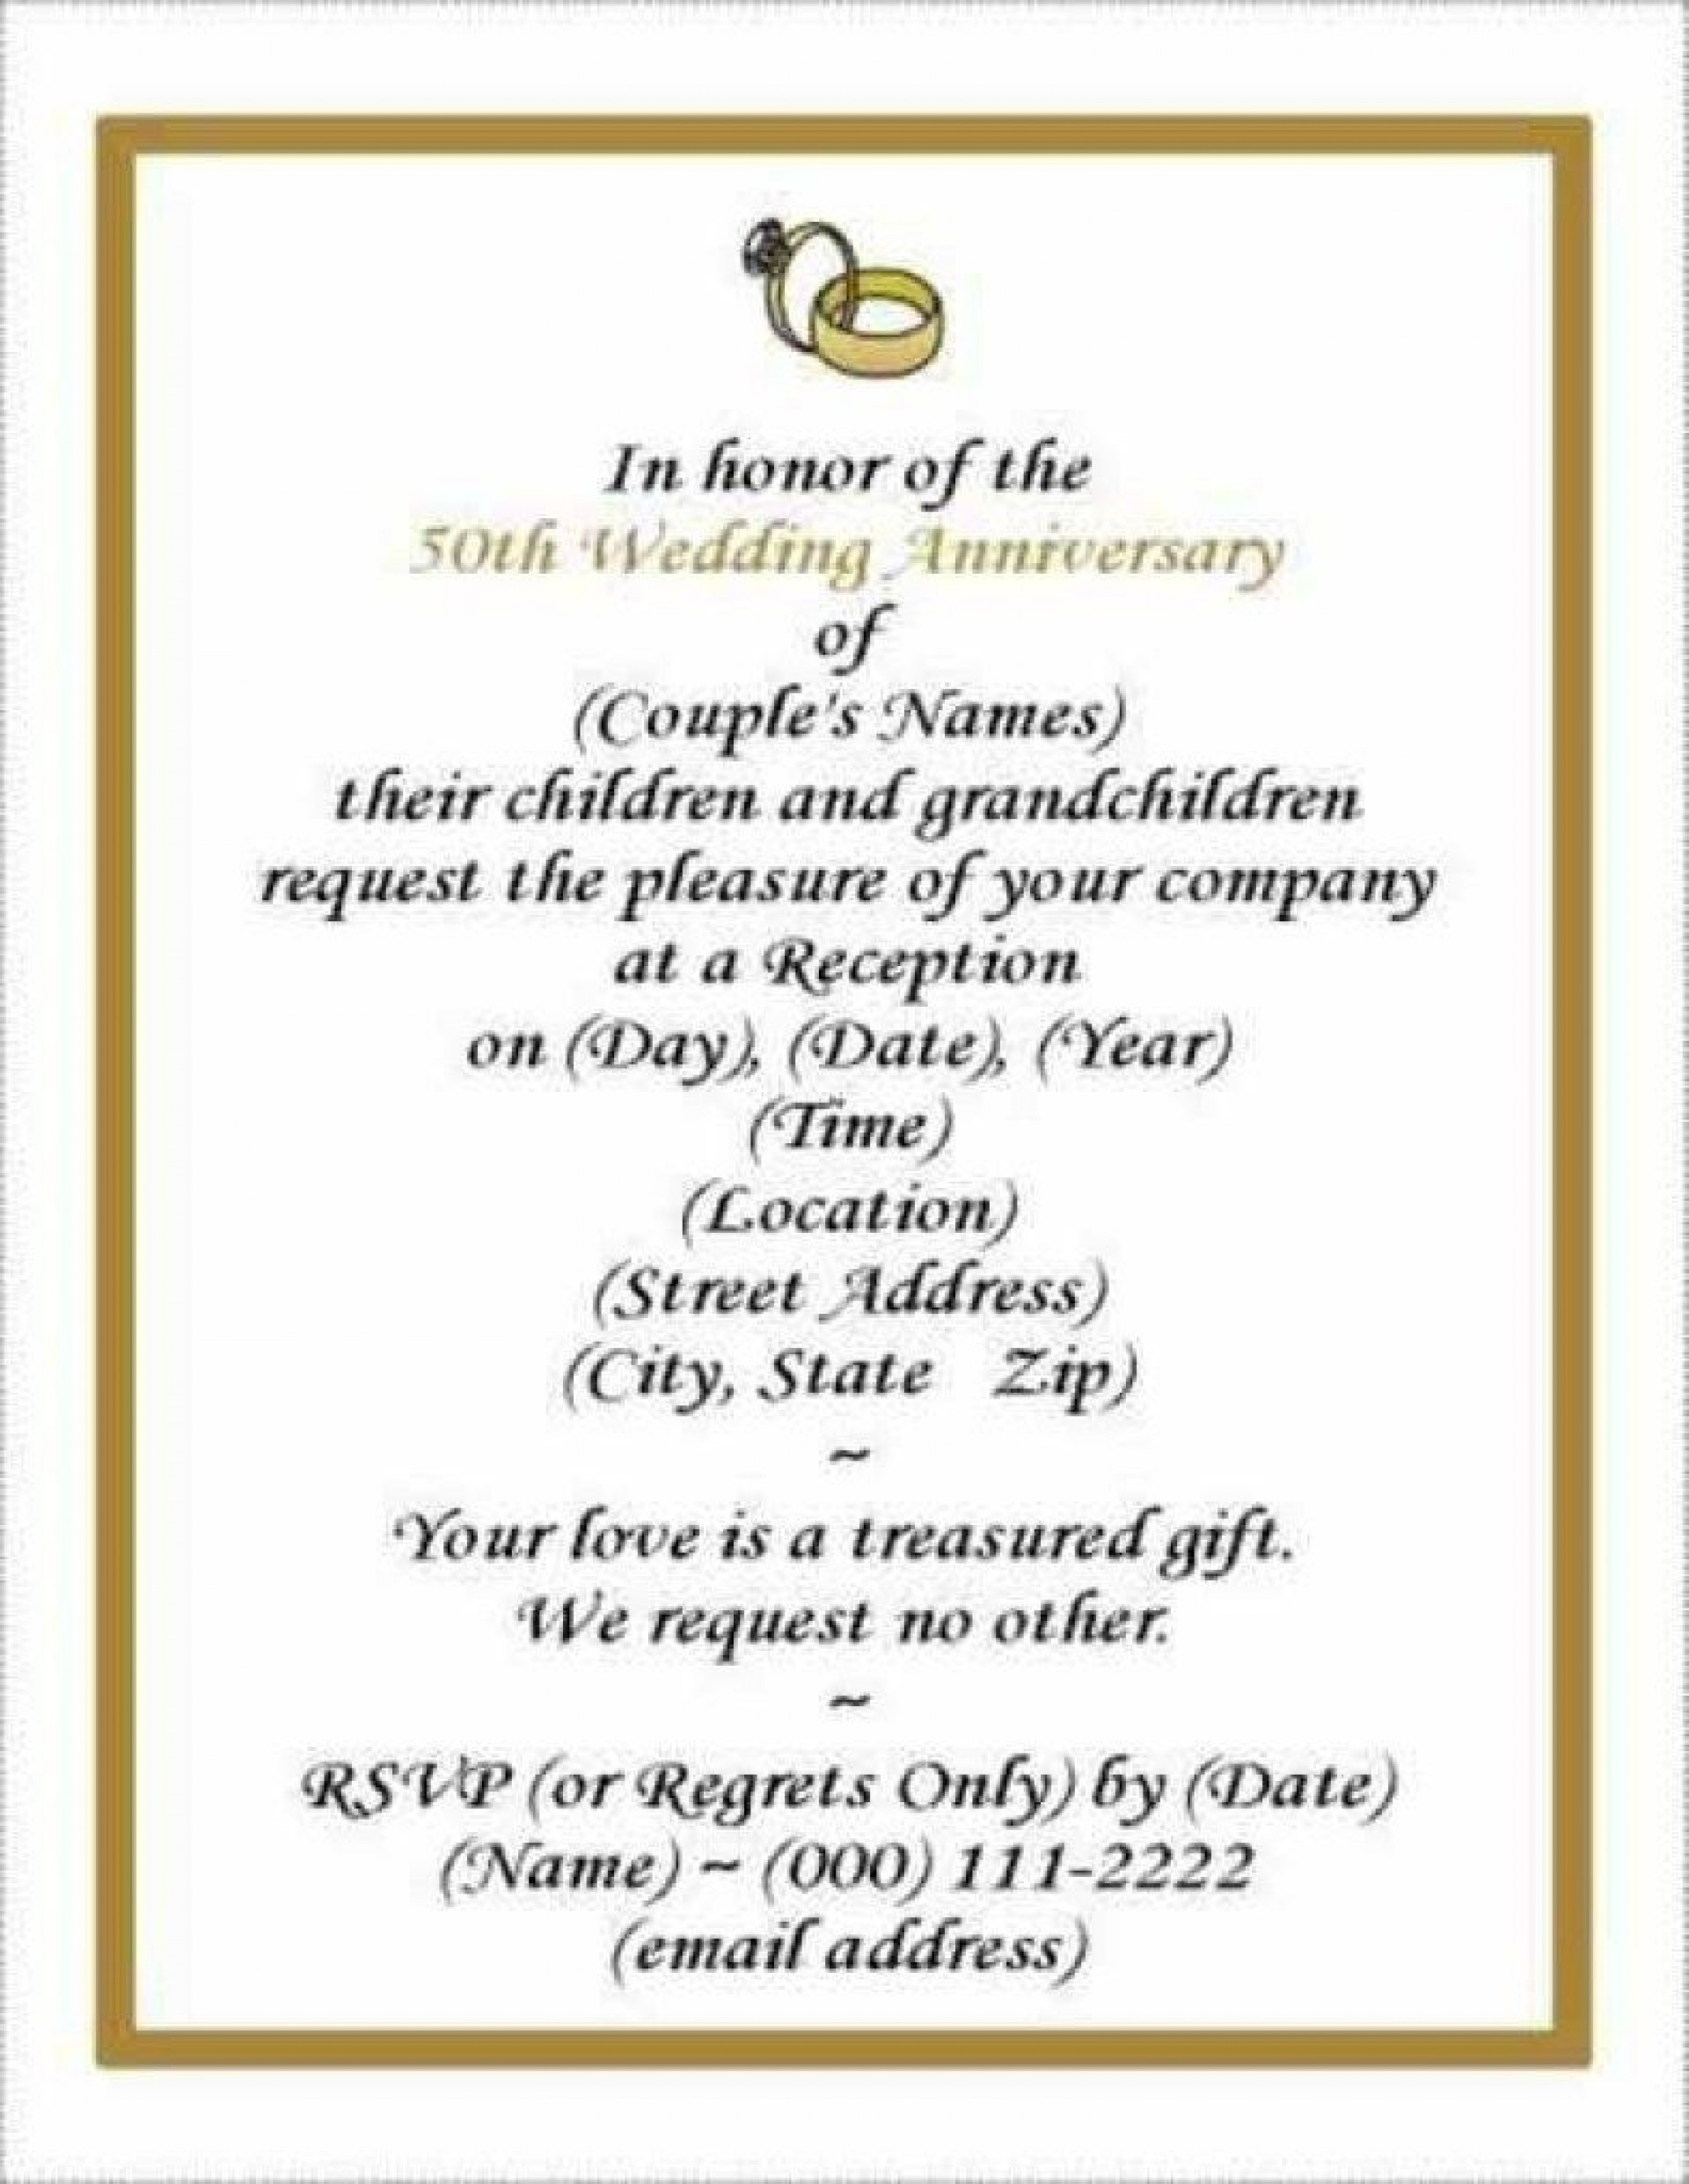 002 Remarkable 50th Wedding Anniversary Invitation Card Template Picture  Templates Sample1920